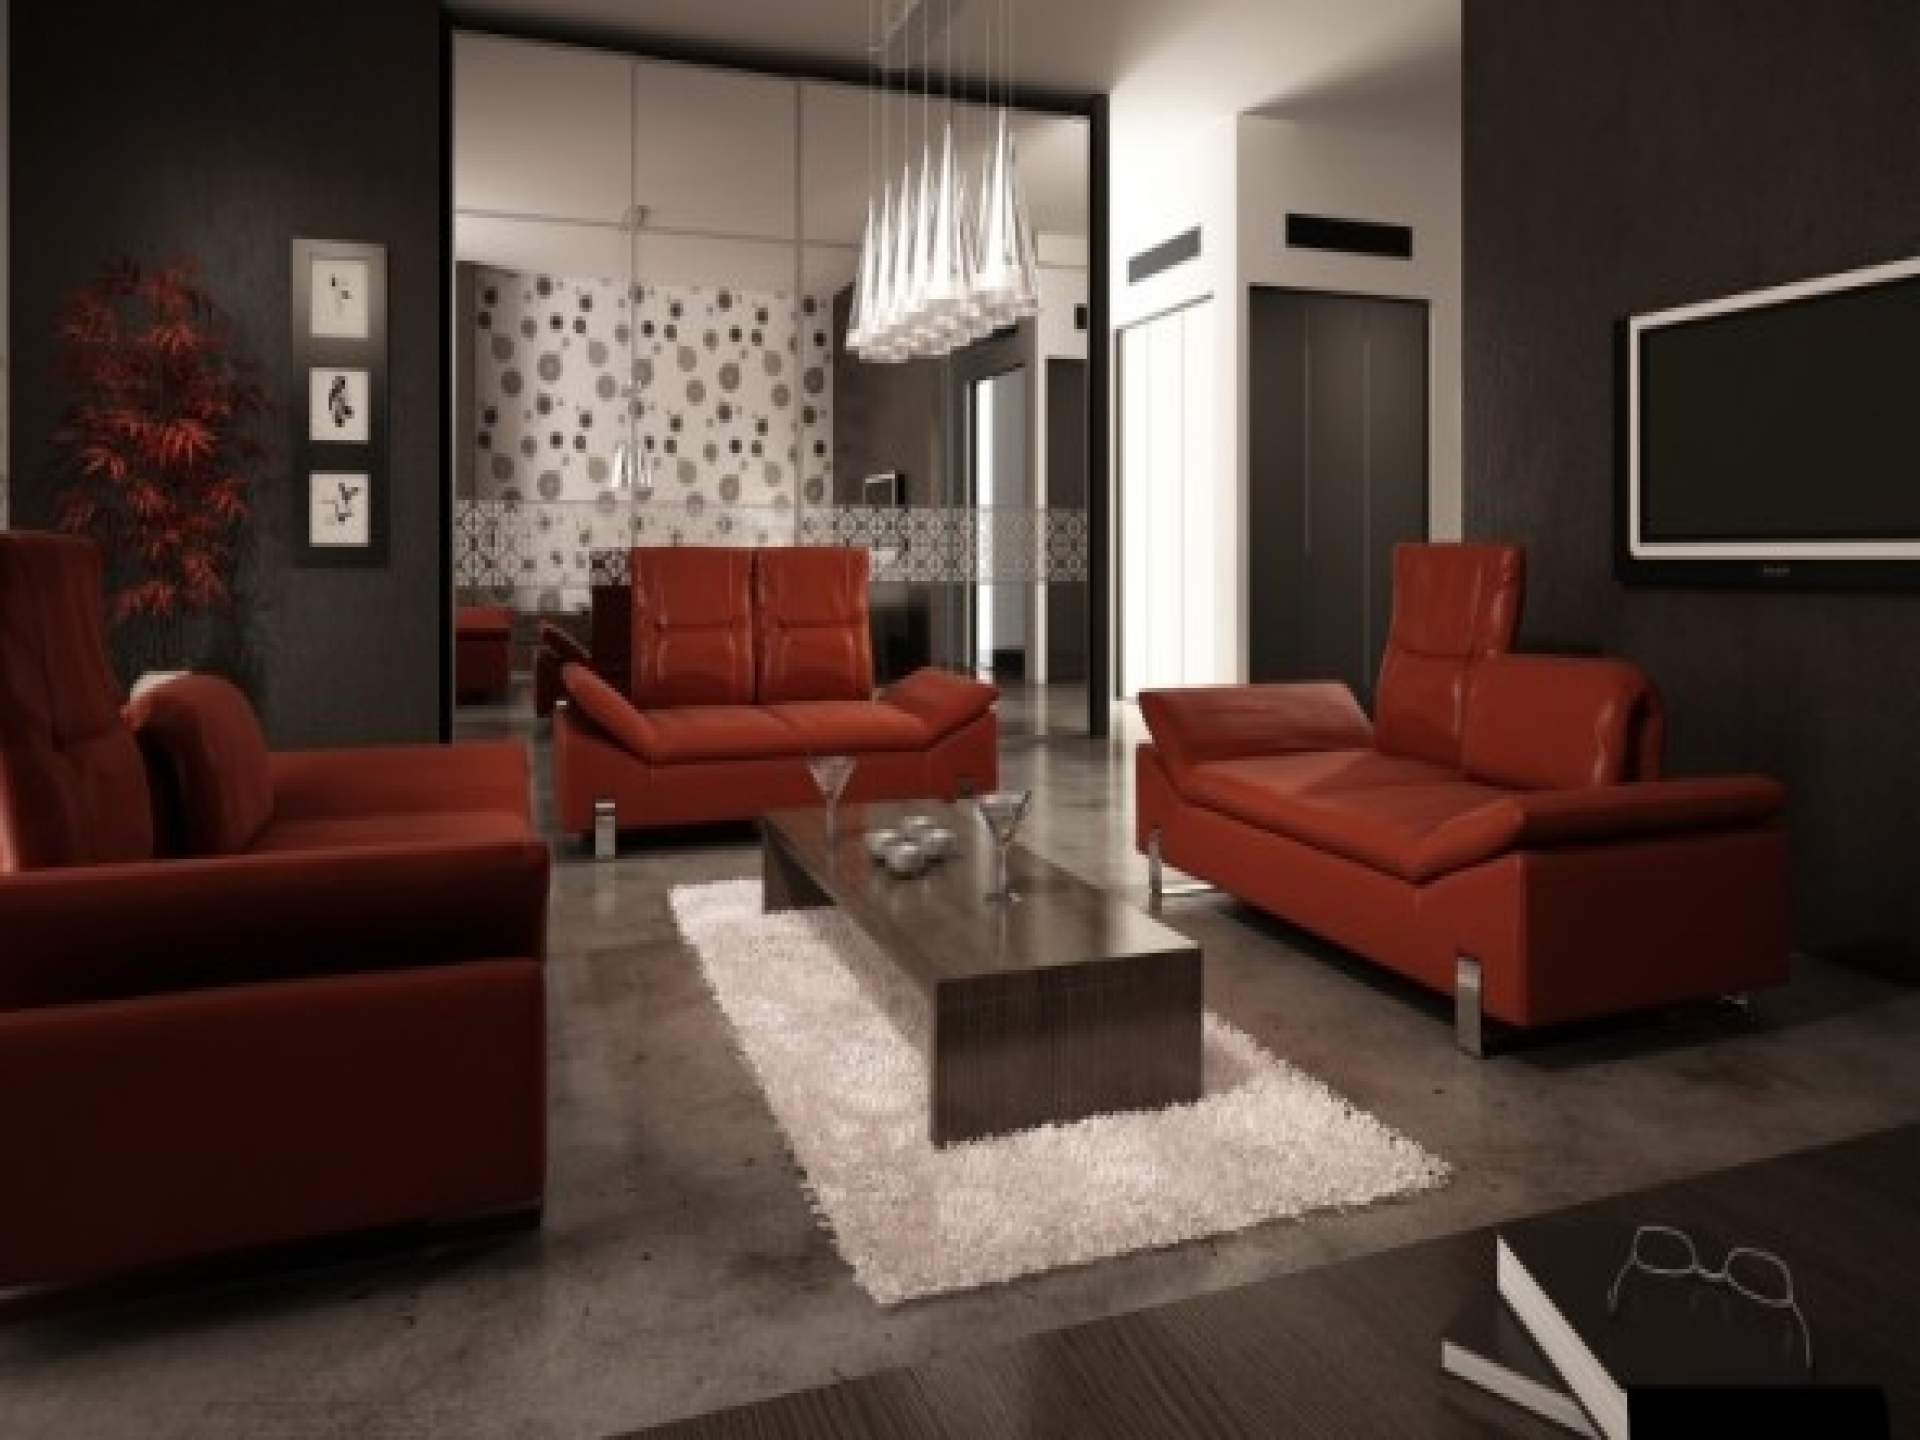 Famous Red Leather Couches For Living Room Inside Red Leather Sofa Living Room Ideas – Google Search (View 6 of 20)